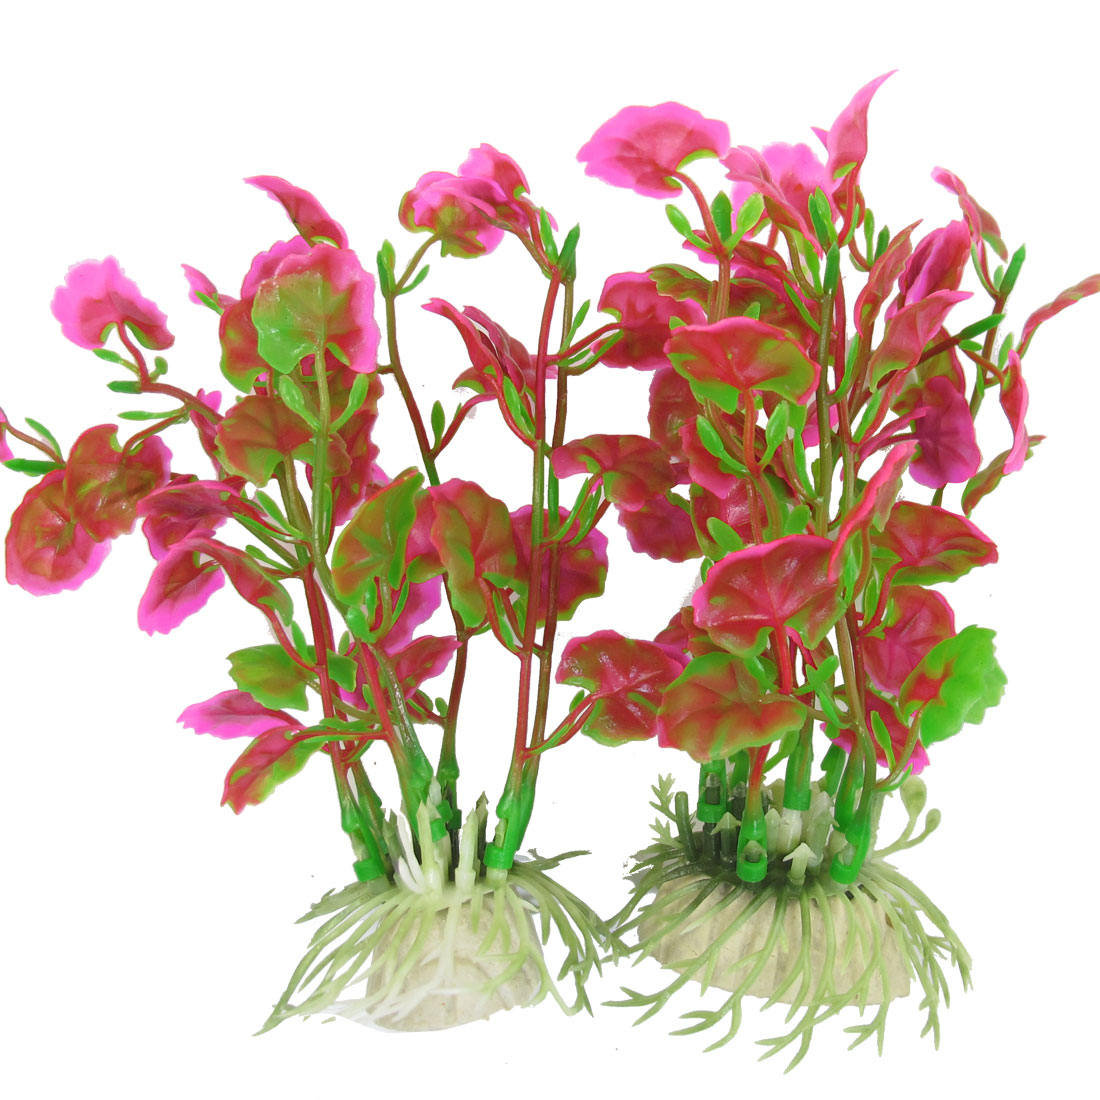 "2 Pcs 5.5"" High Plastic Plants Grass Ornamet Green Fuchsia for Fish Tank"